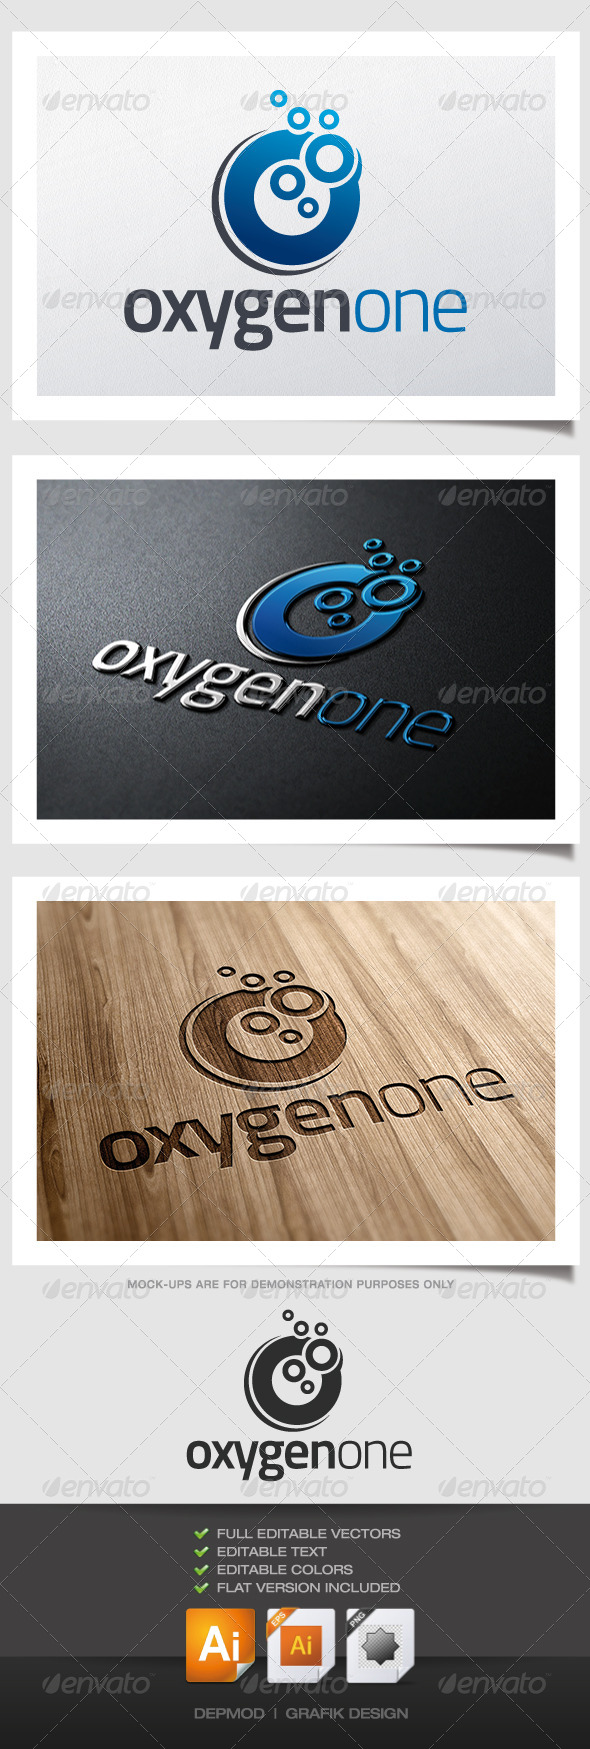 GraphicRiver Oxygen One Logo 4604903